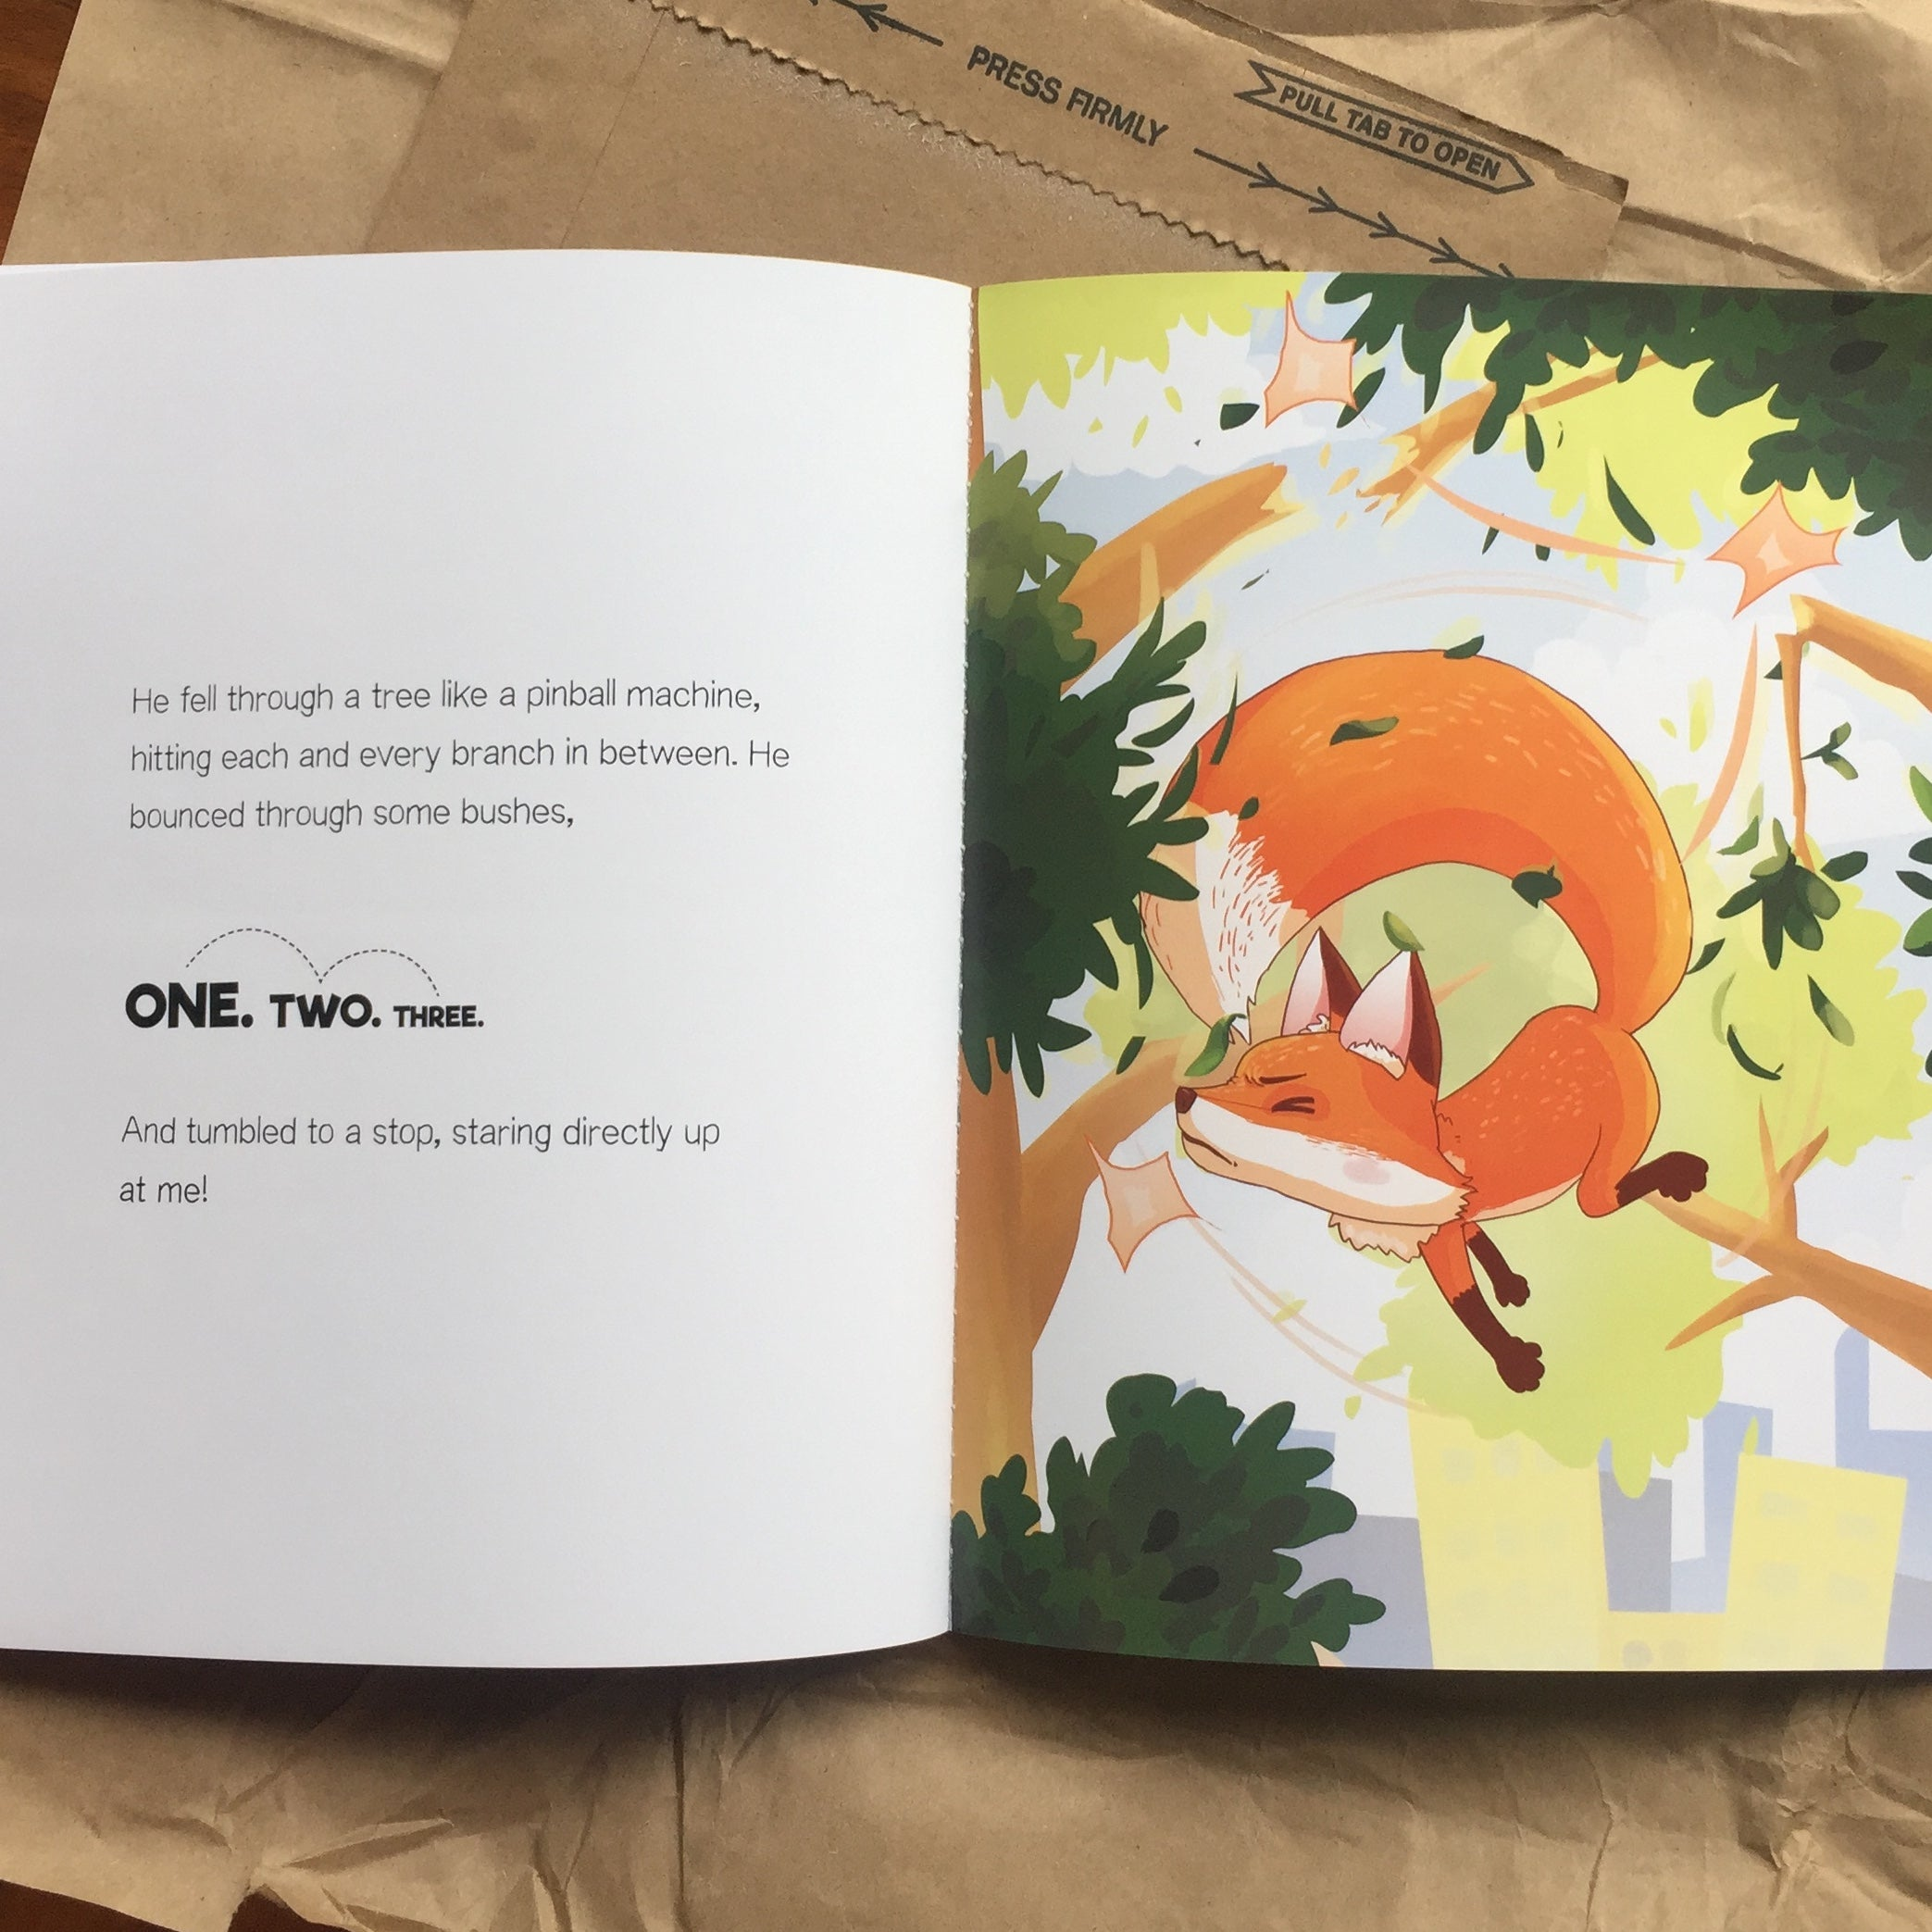 The Hey Rocco storybook opened to a page with an illustrated picture of Rocco falling through a tree